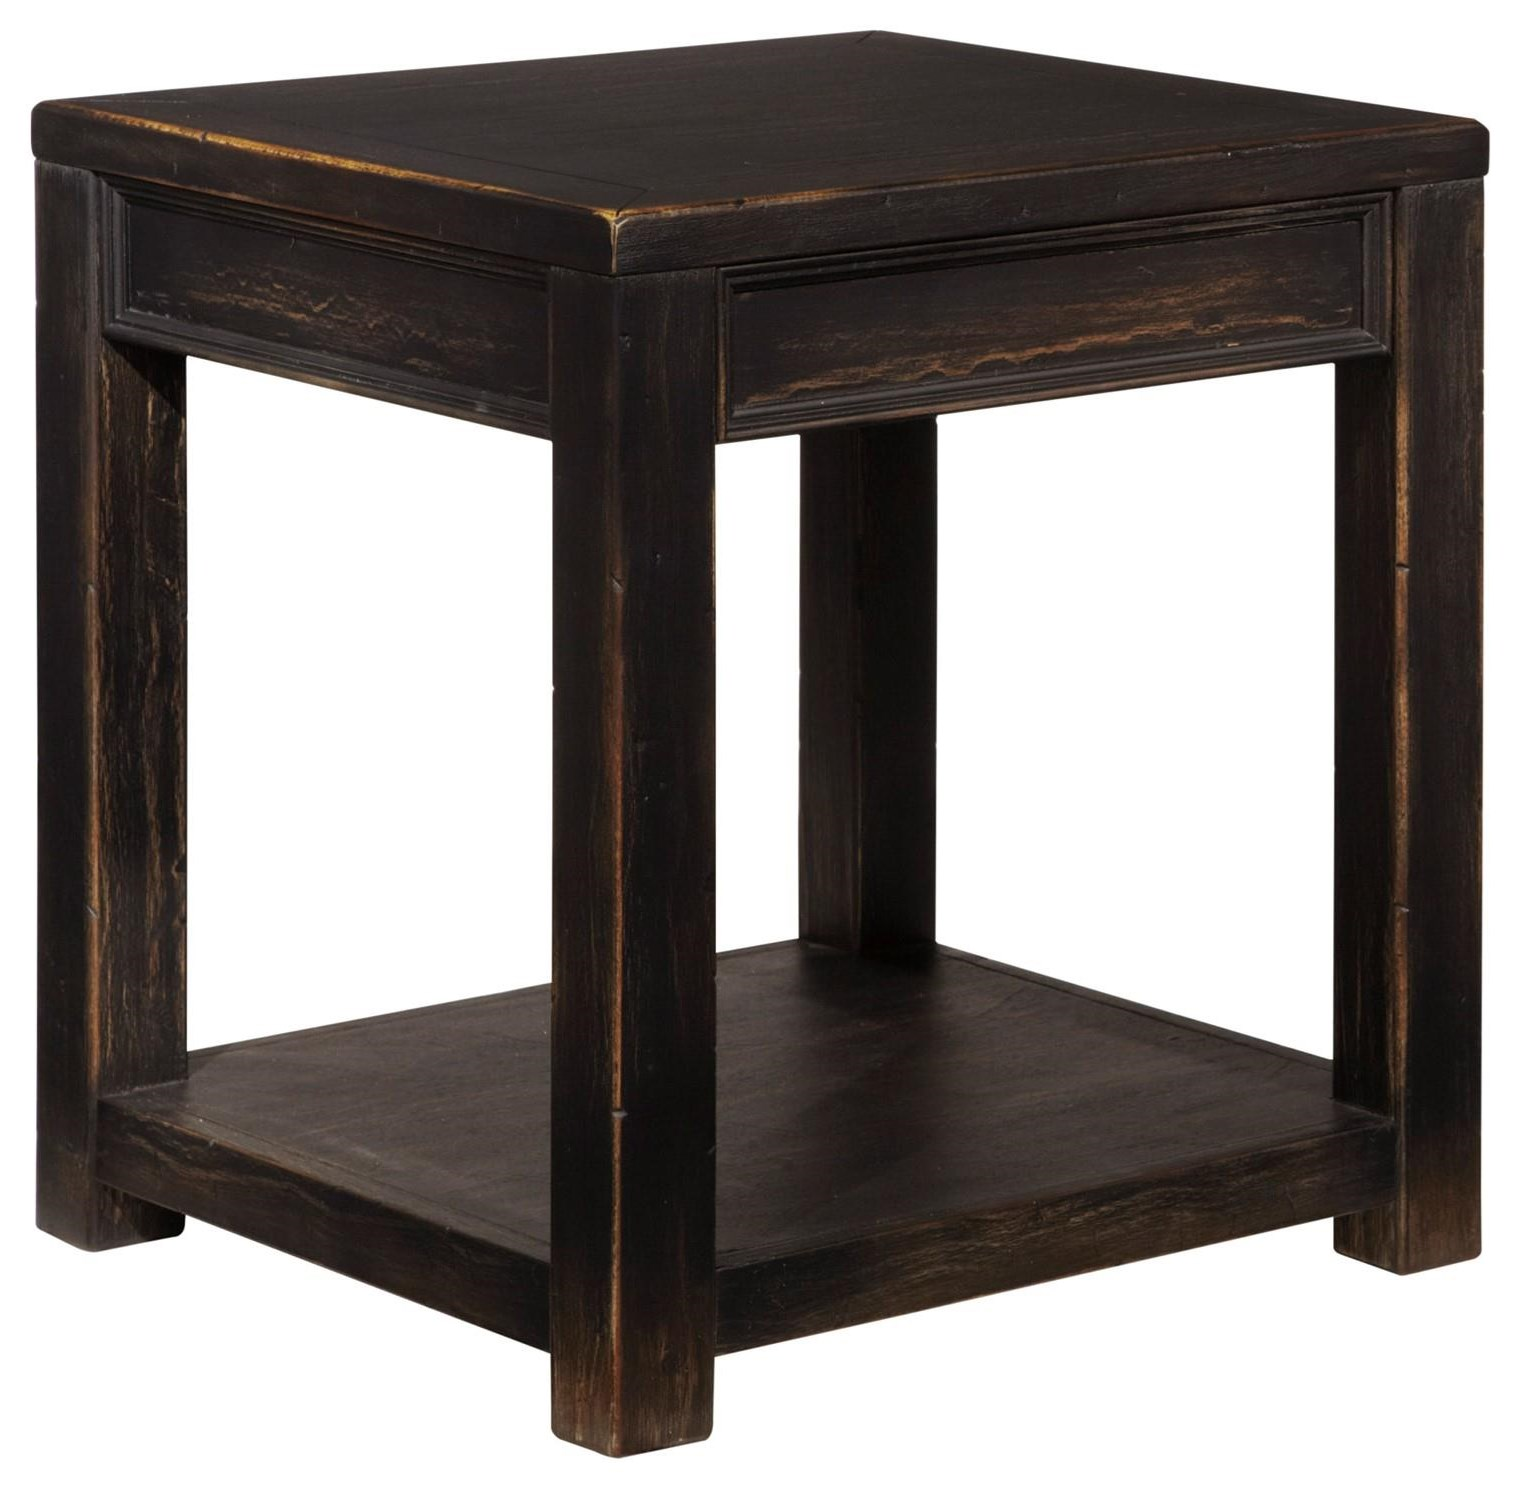 Gavelston End Table by Signature Design by Ashley at HomeWorld Furniture